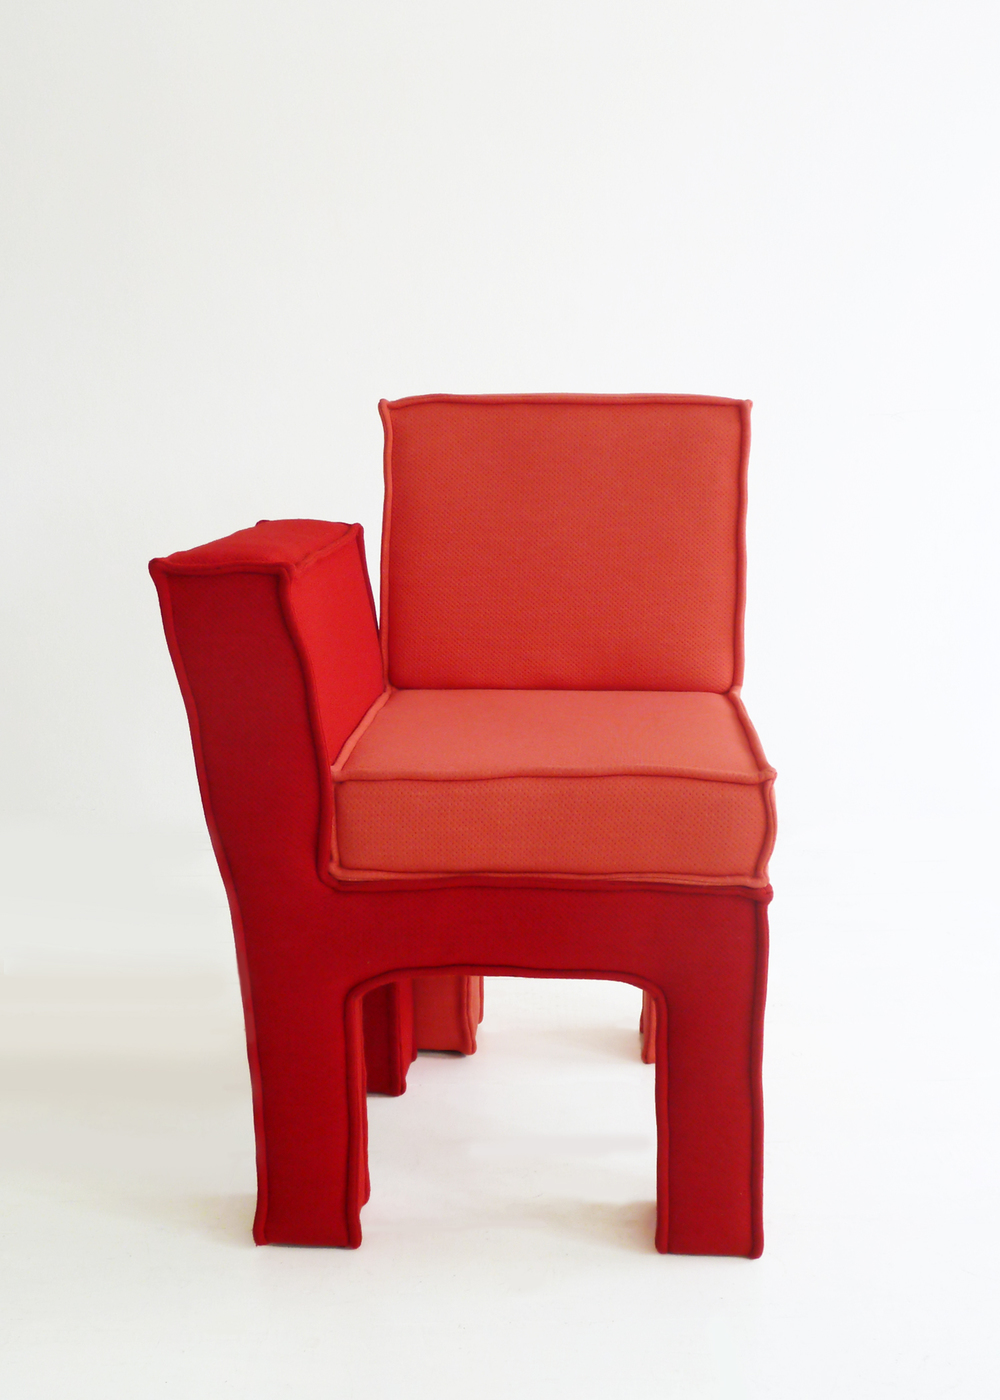 love seat - chair - by annebet philips 2.jpg